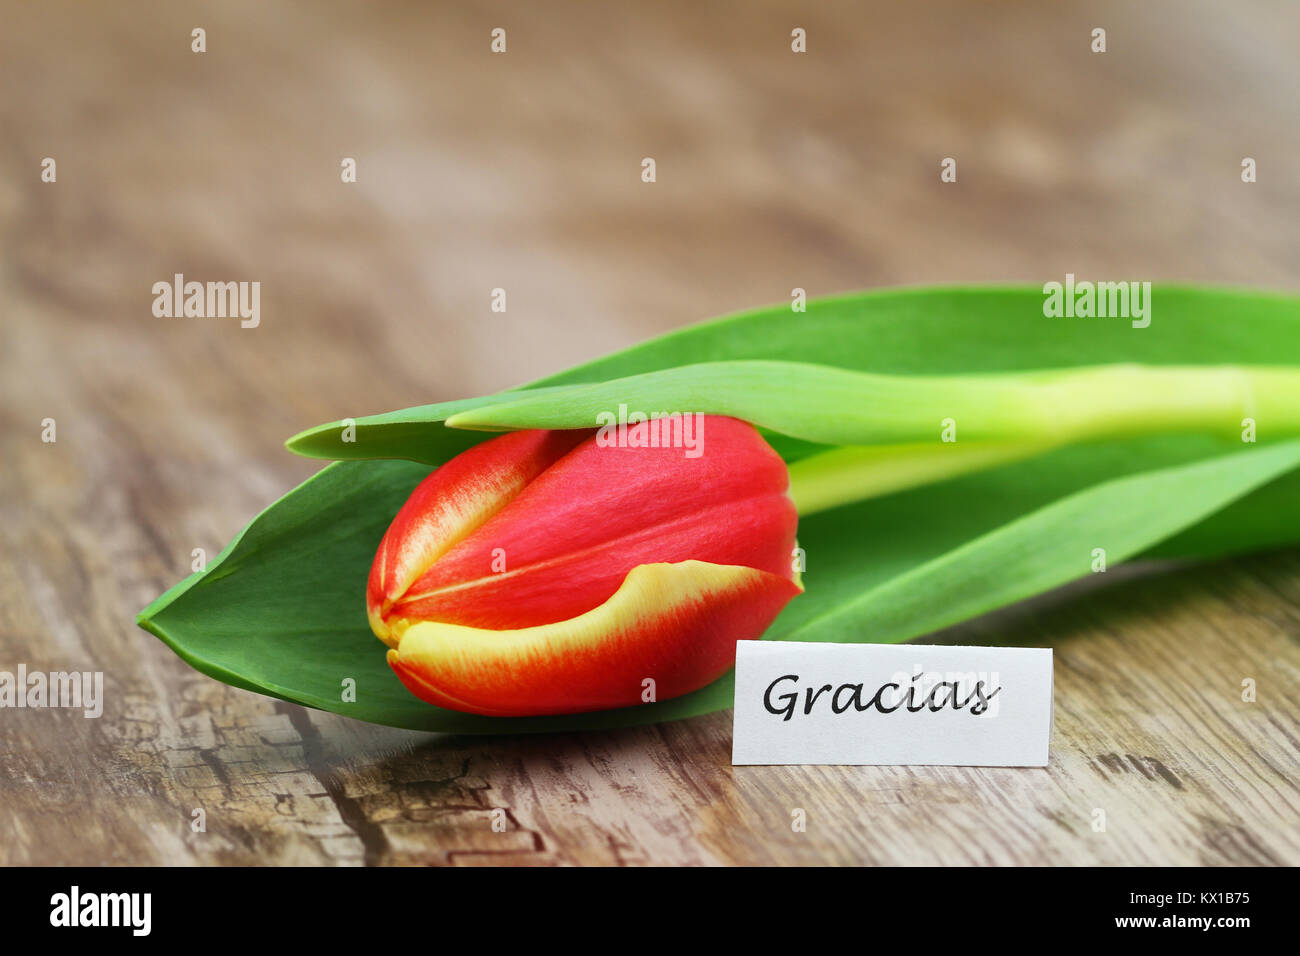 Gracias thank you in spanish with one red and yellow tulip stock gracias thank you in spanish with one red and yellow tulip izmirmasajfo Image collections